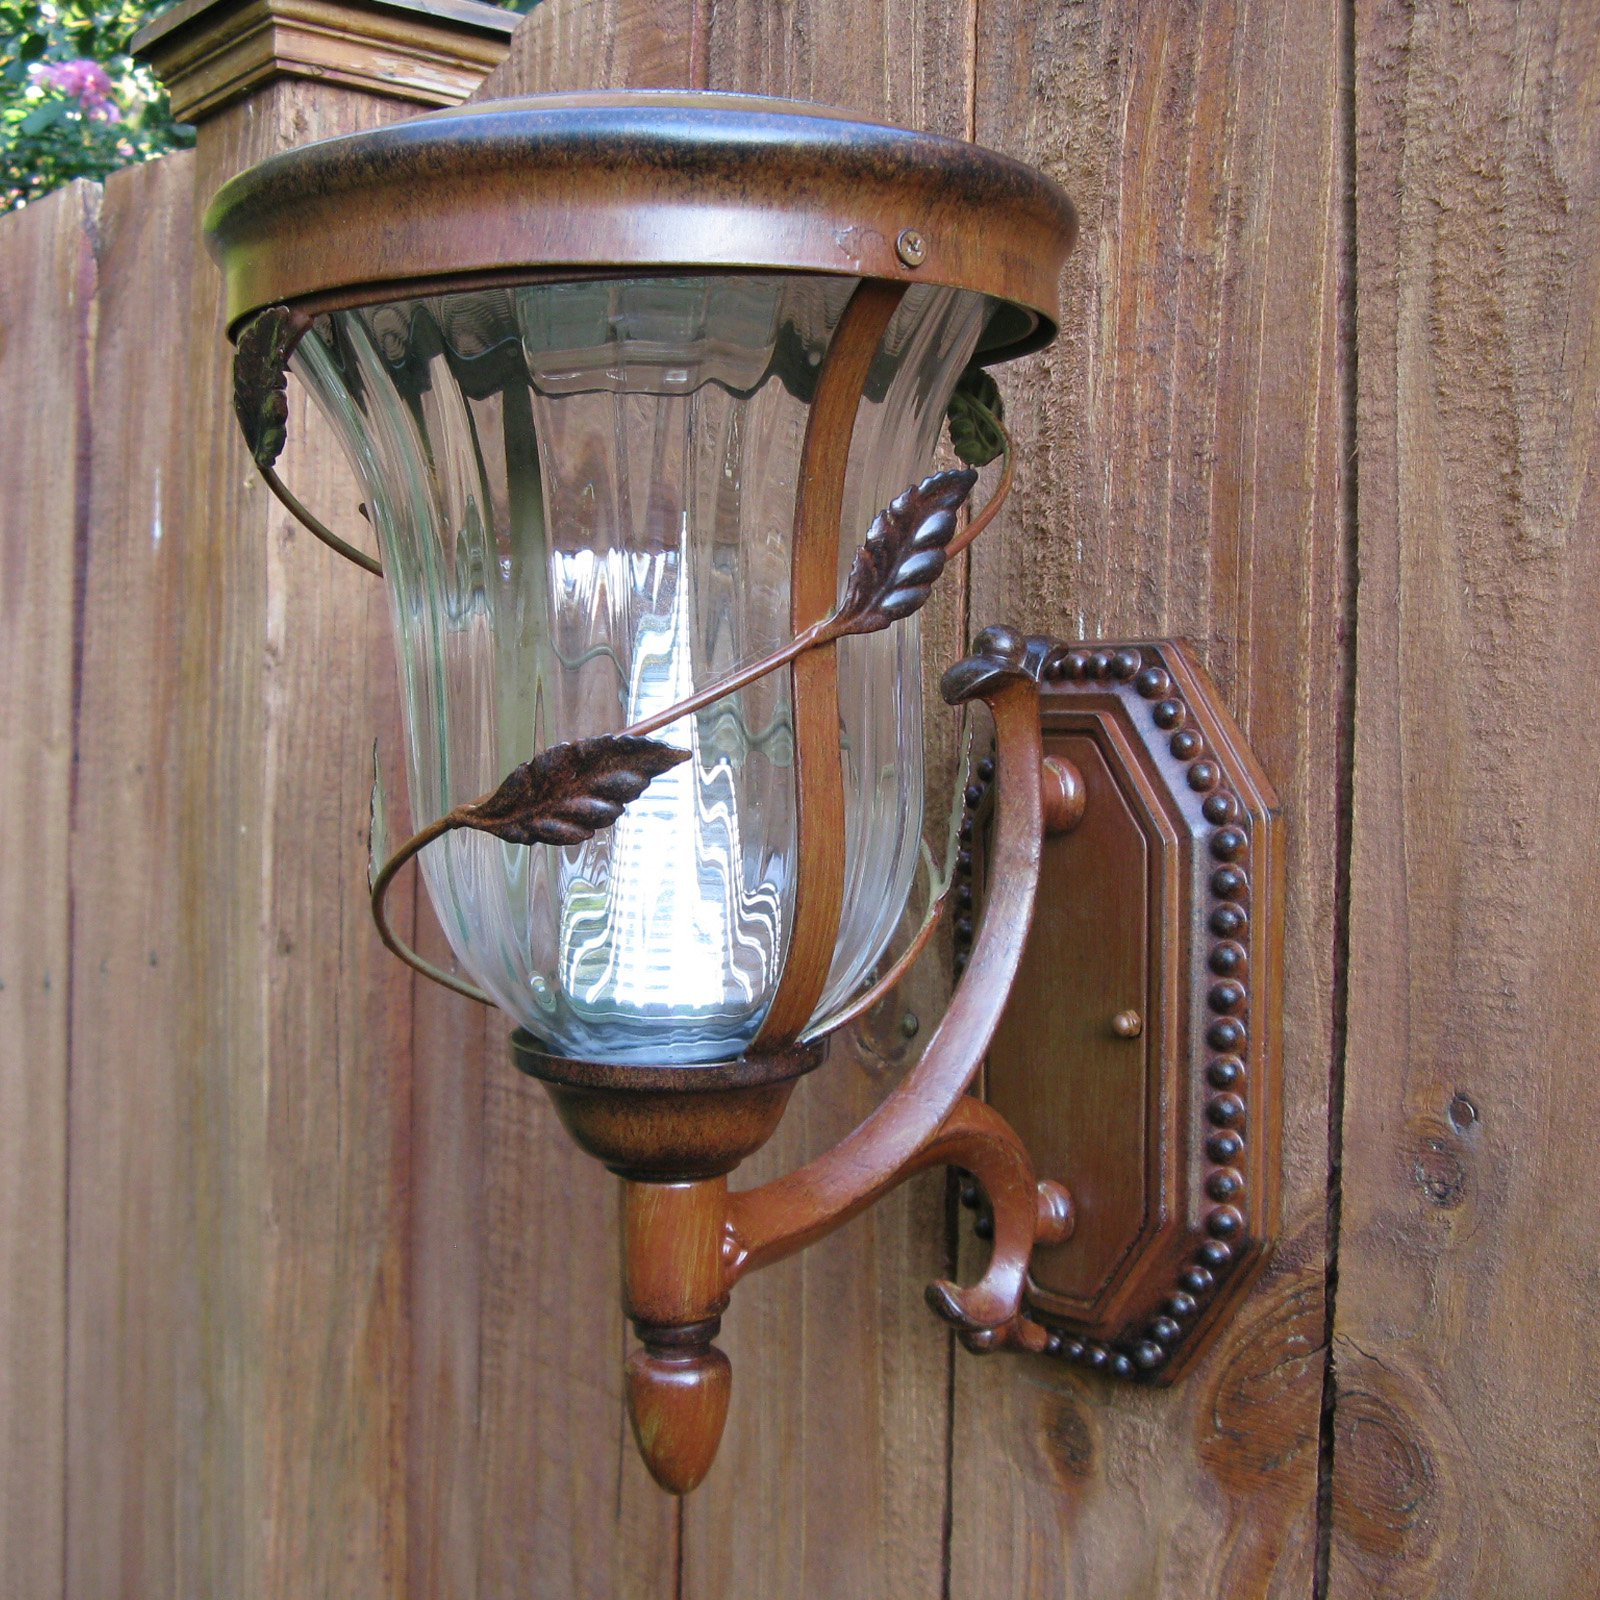 Gama Sonic Flora Solar LED Light Fixture on Wall Sconce